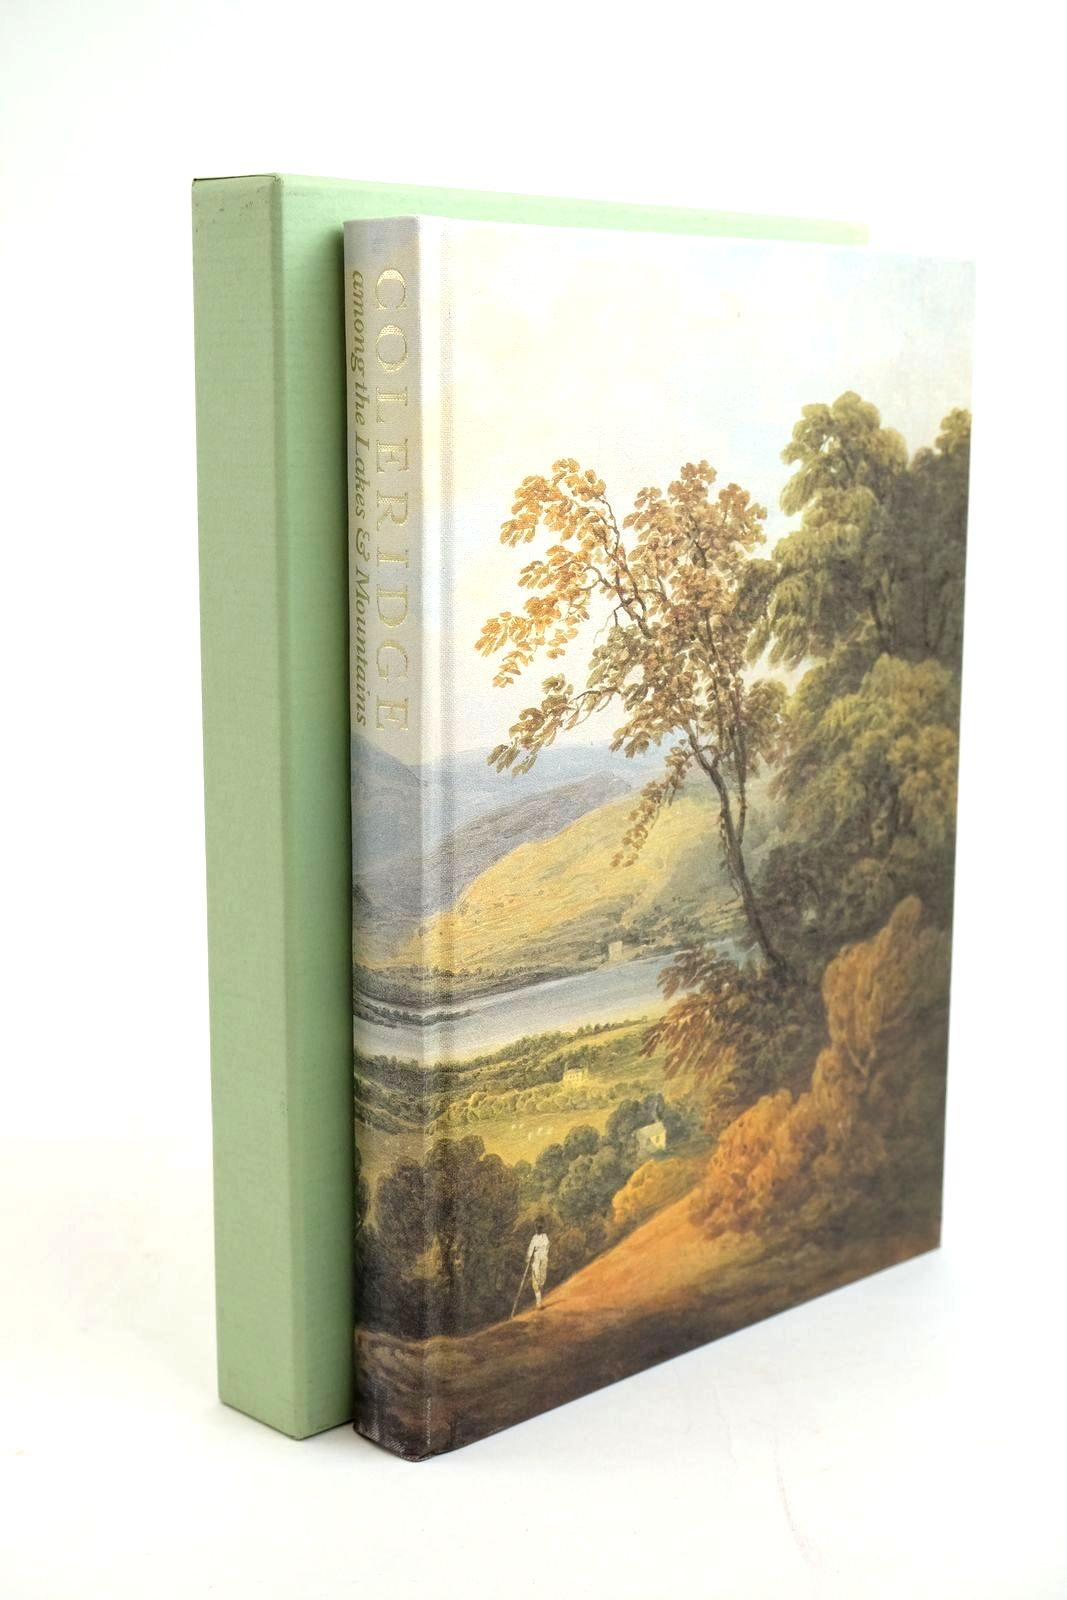 Photo of COLERIDGE AMONG THE LAKES & MOUNTAINS written by Coleridge, Samuel Taylor Hudson, Roger published by Folio Society (STOCK CODE: 1321379)  for sale by Stella & Rose's Books